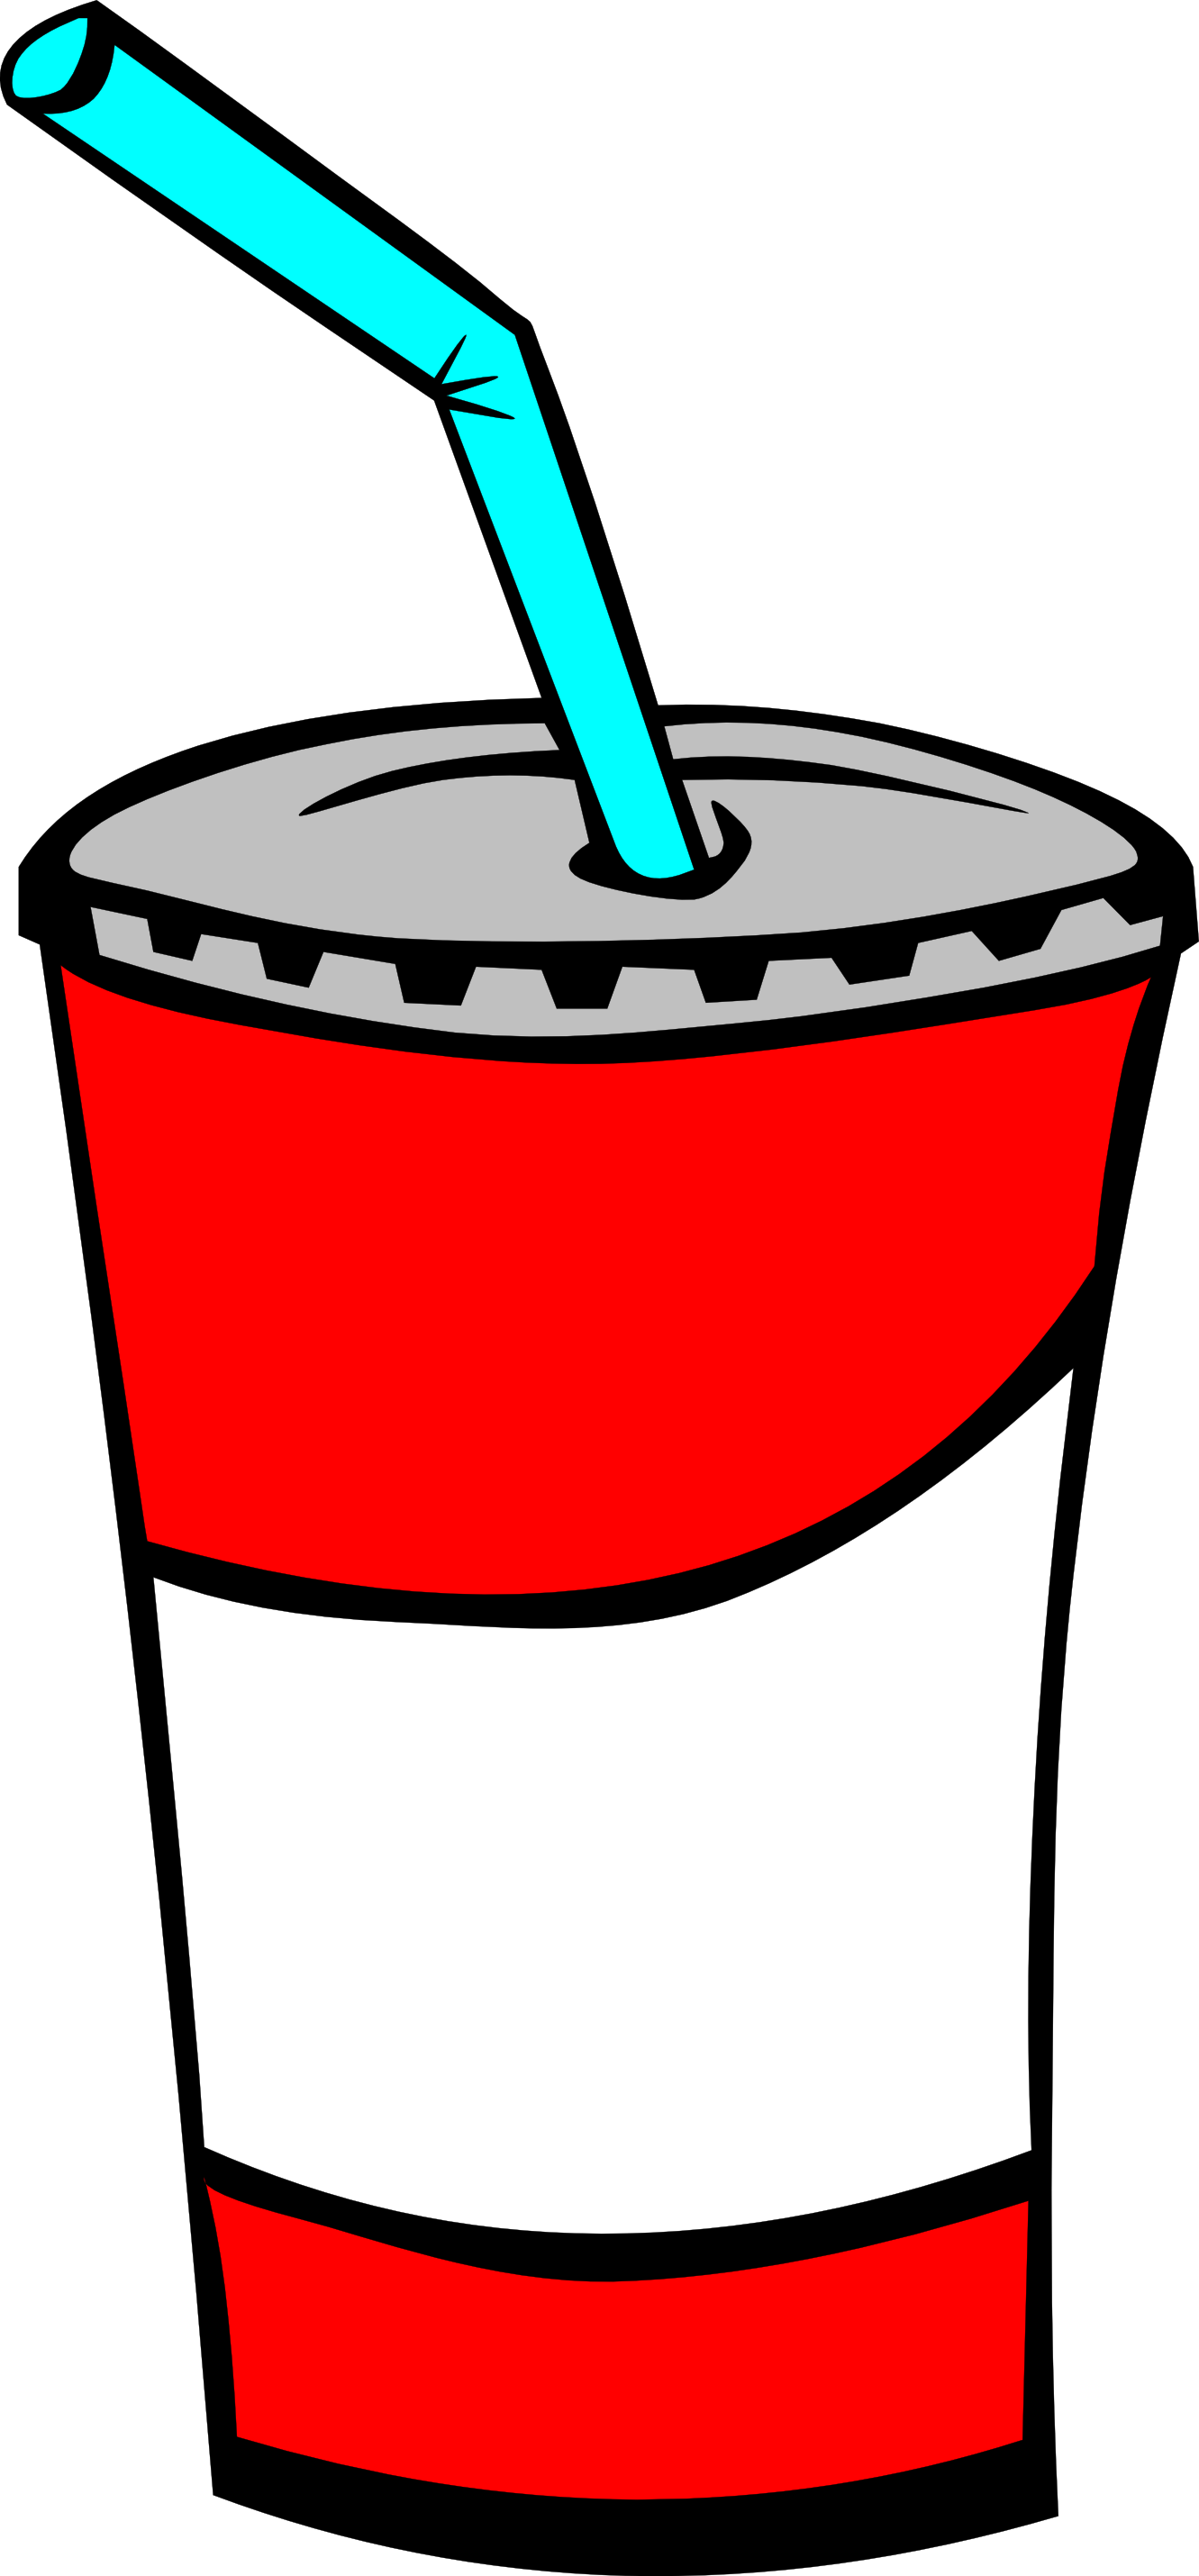 Fast food drink clipart.